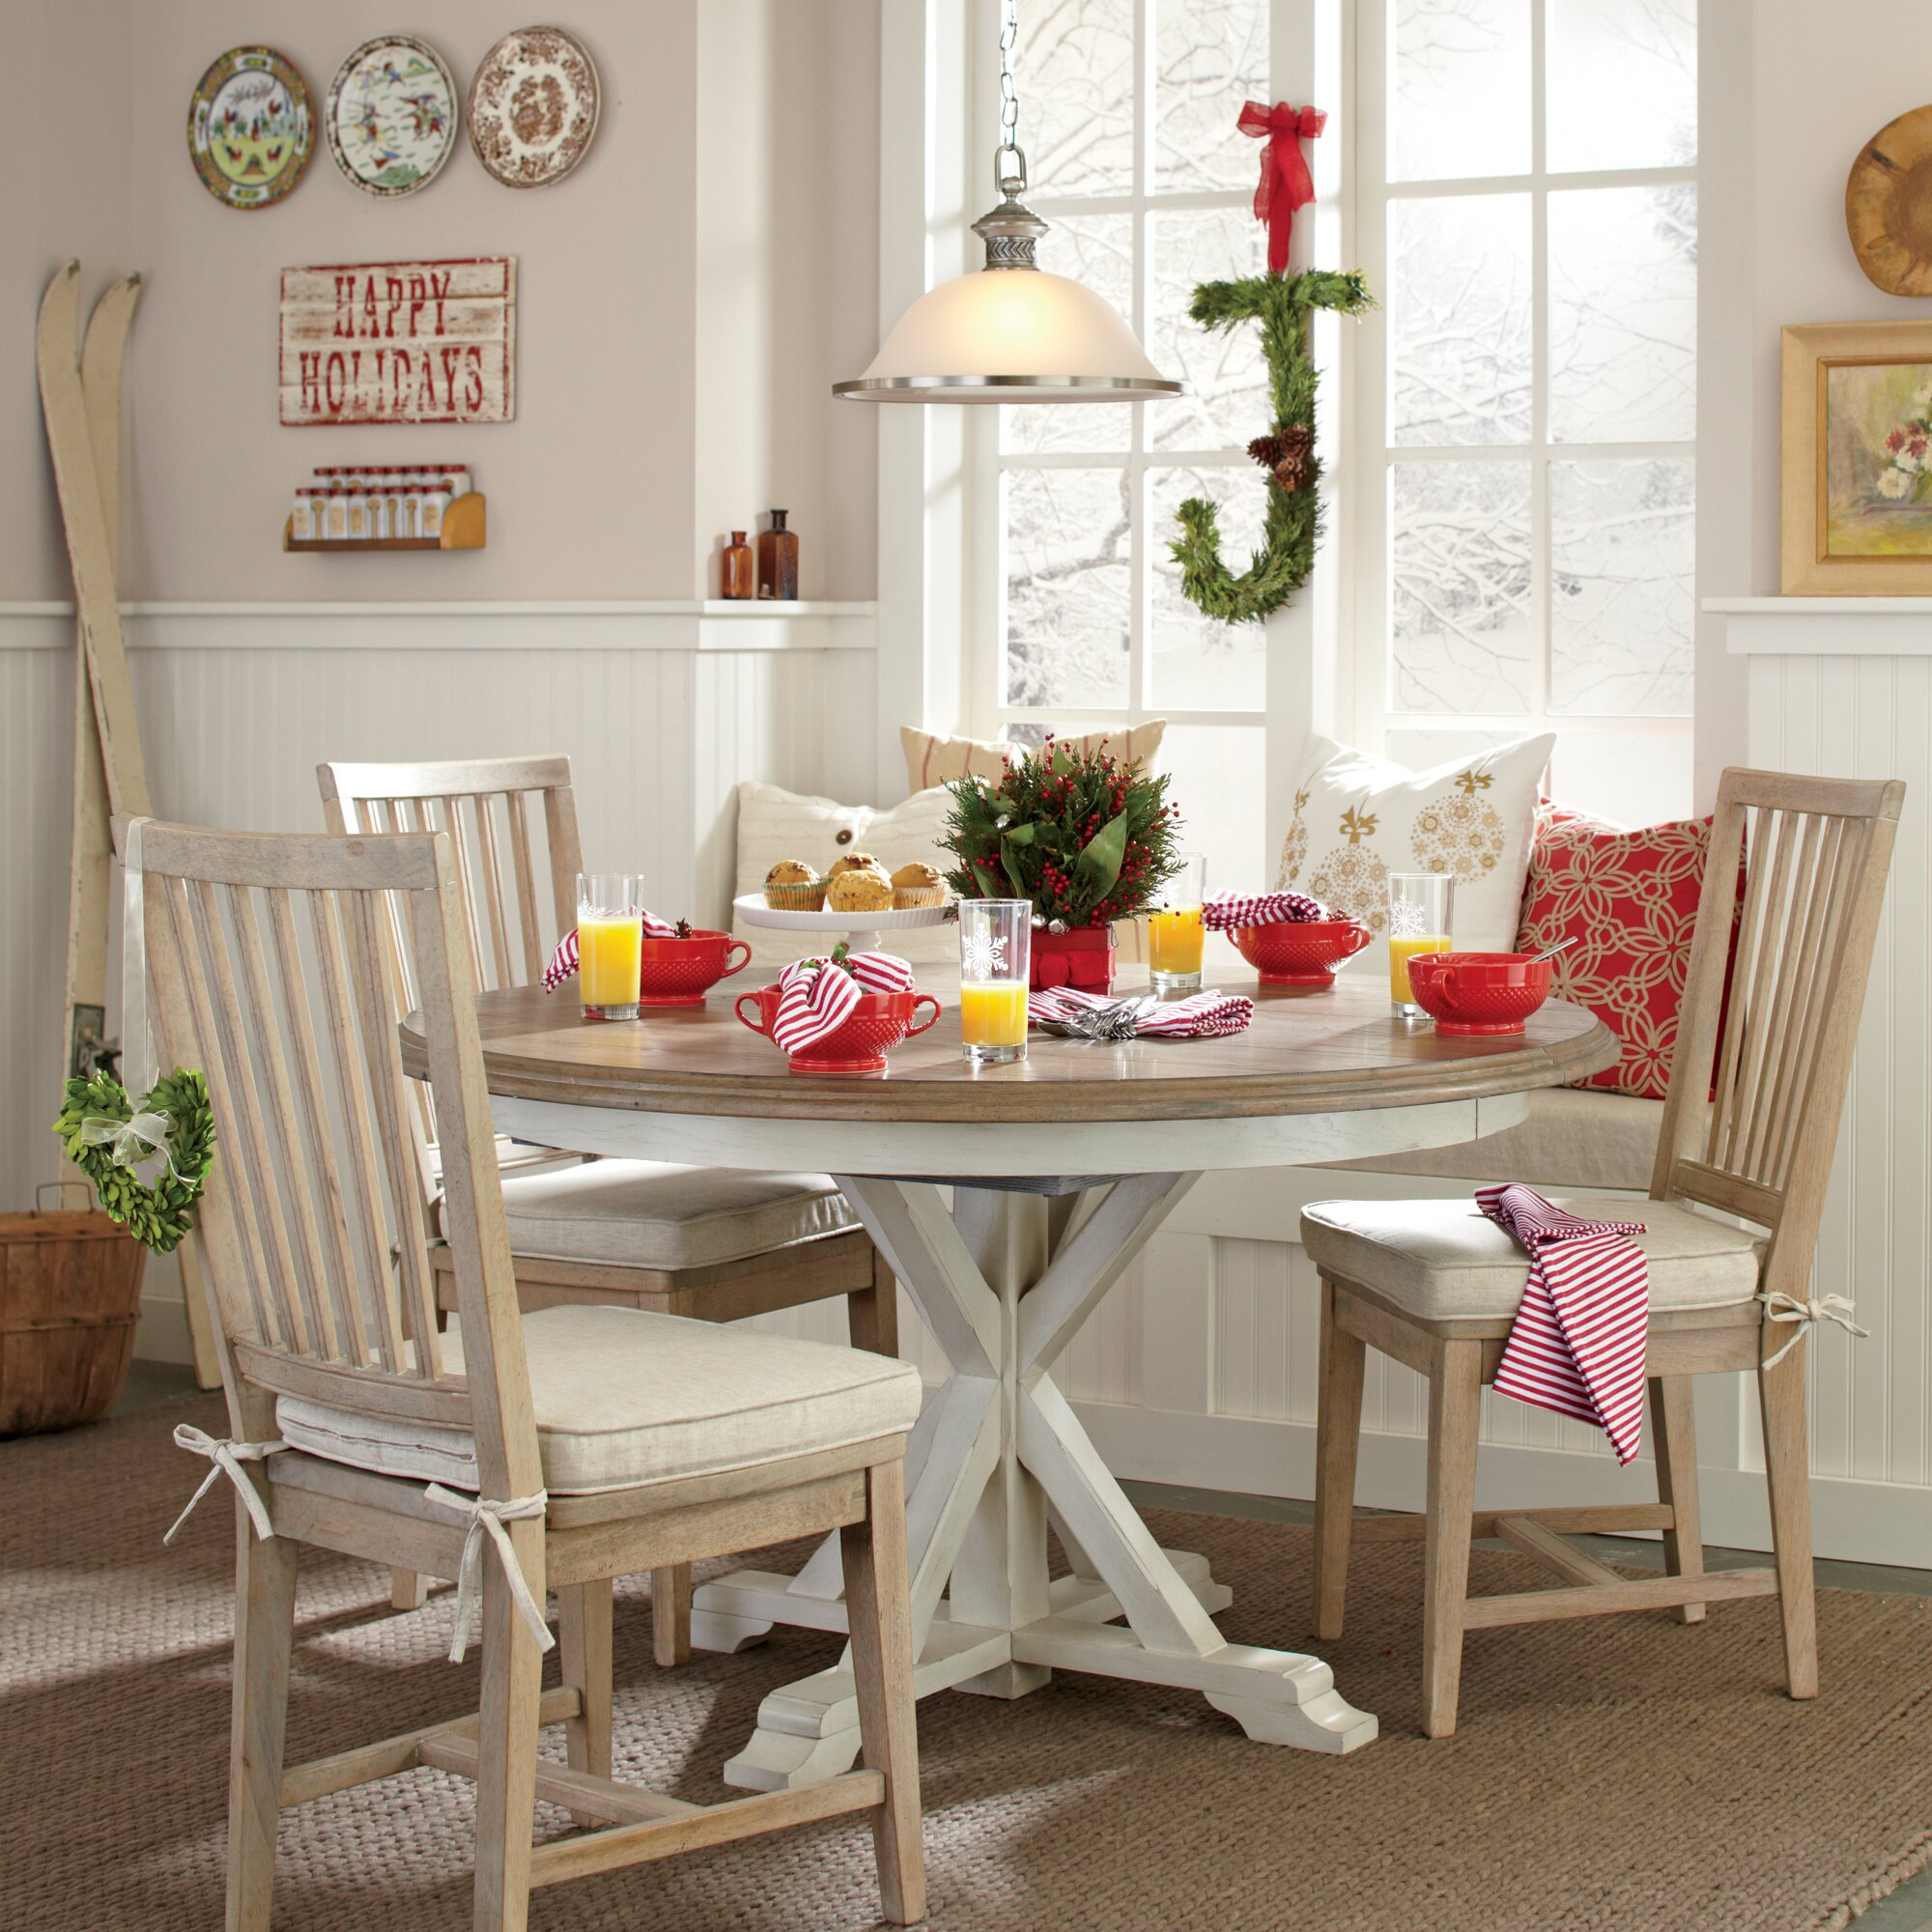 Birch lane grafton extending round dining table reviews wayfair - Birch kitchen table ...